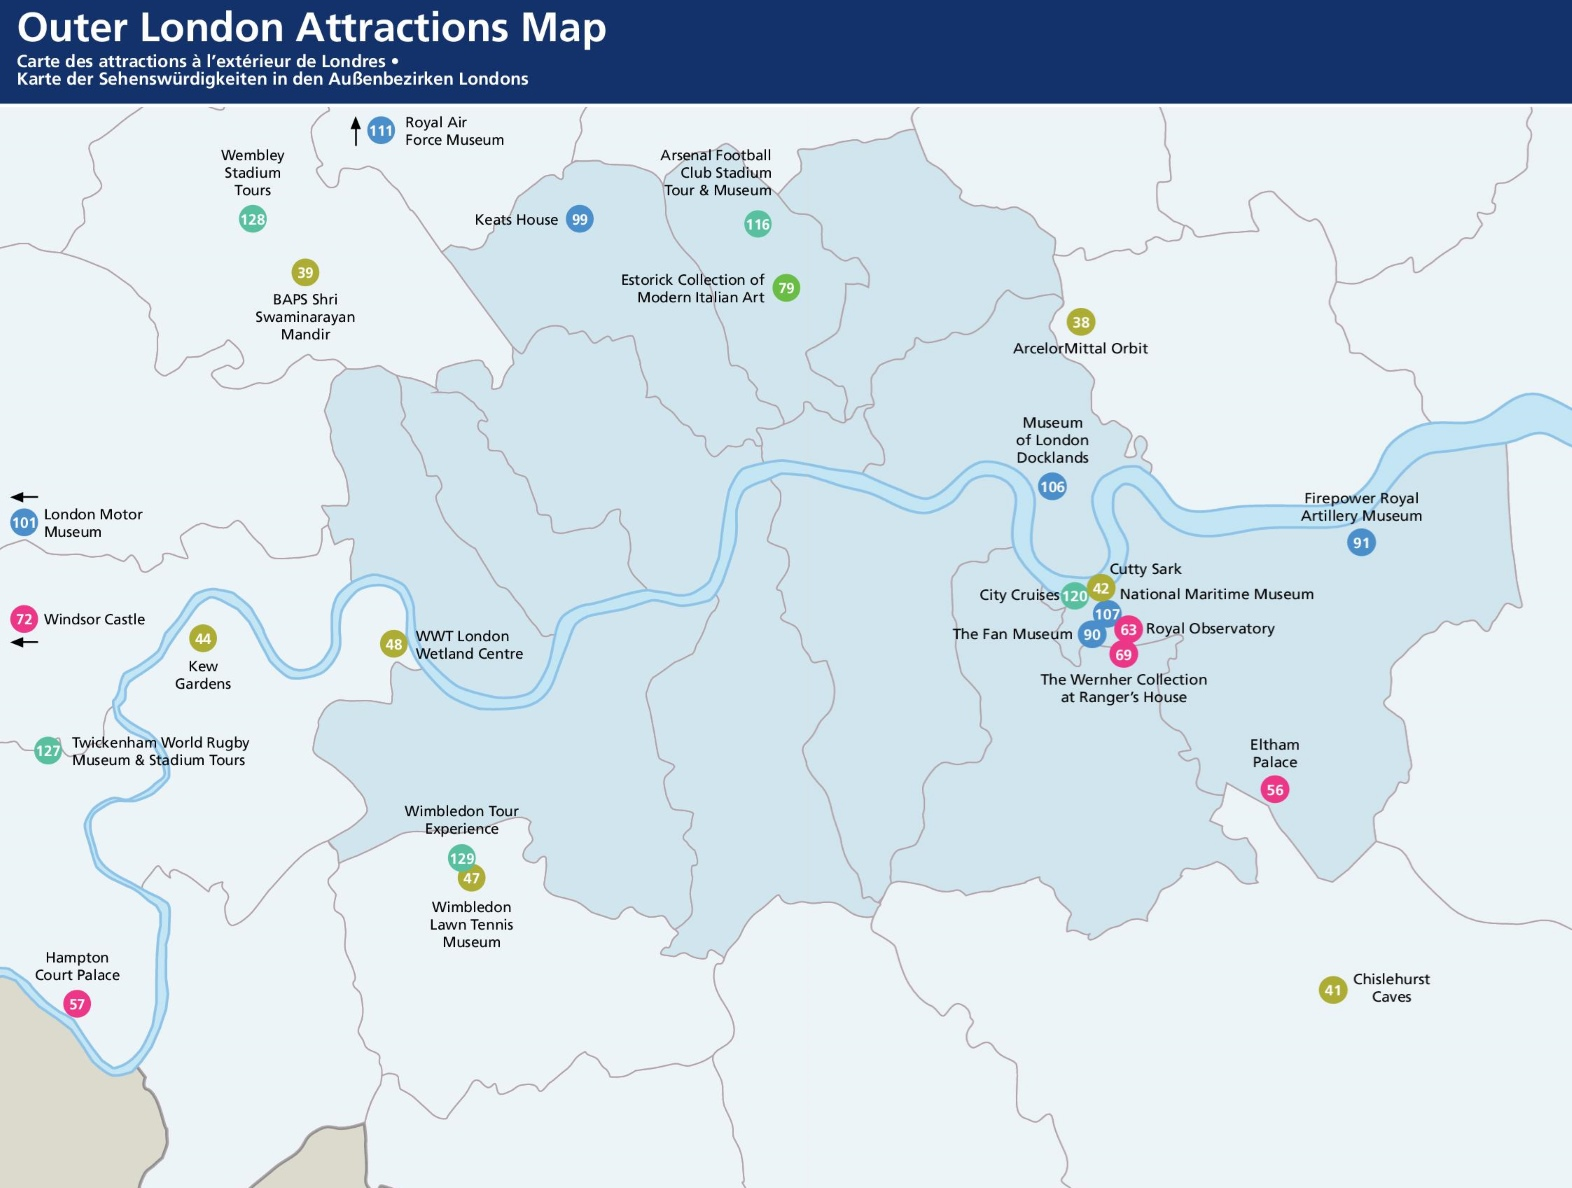 London Map Attractions.Outer London Tourist Attractions Map